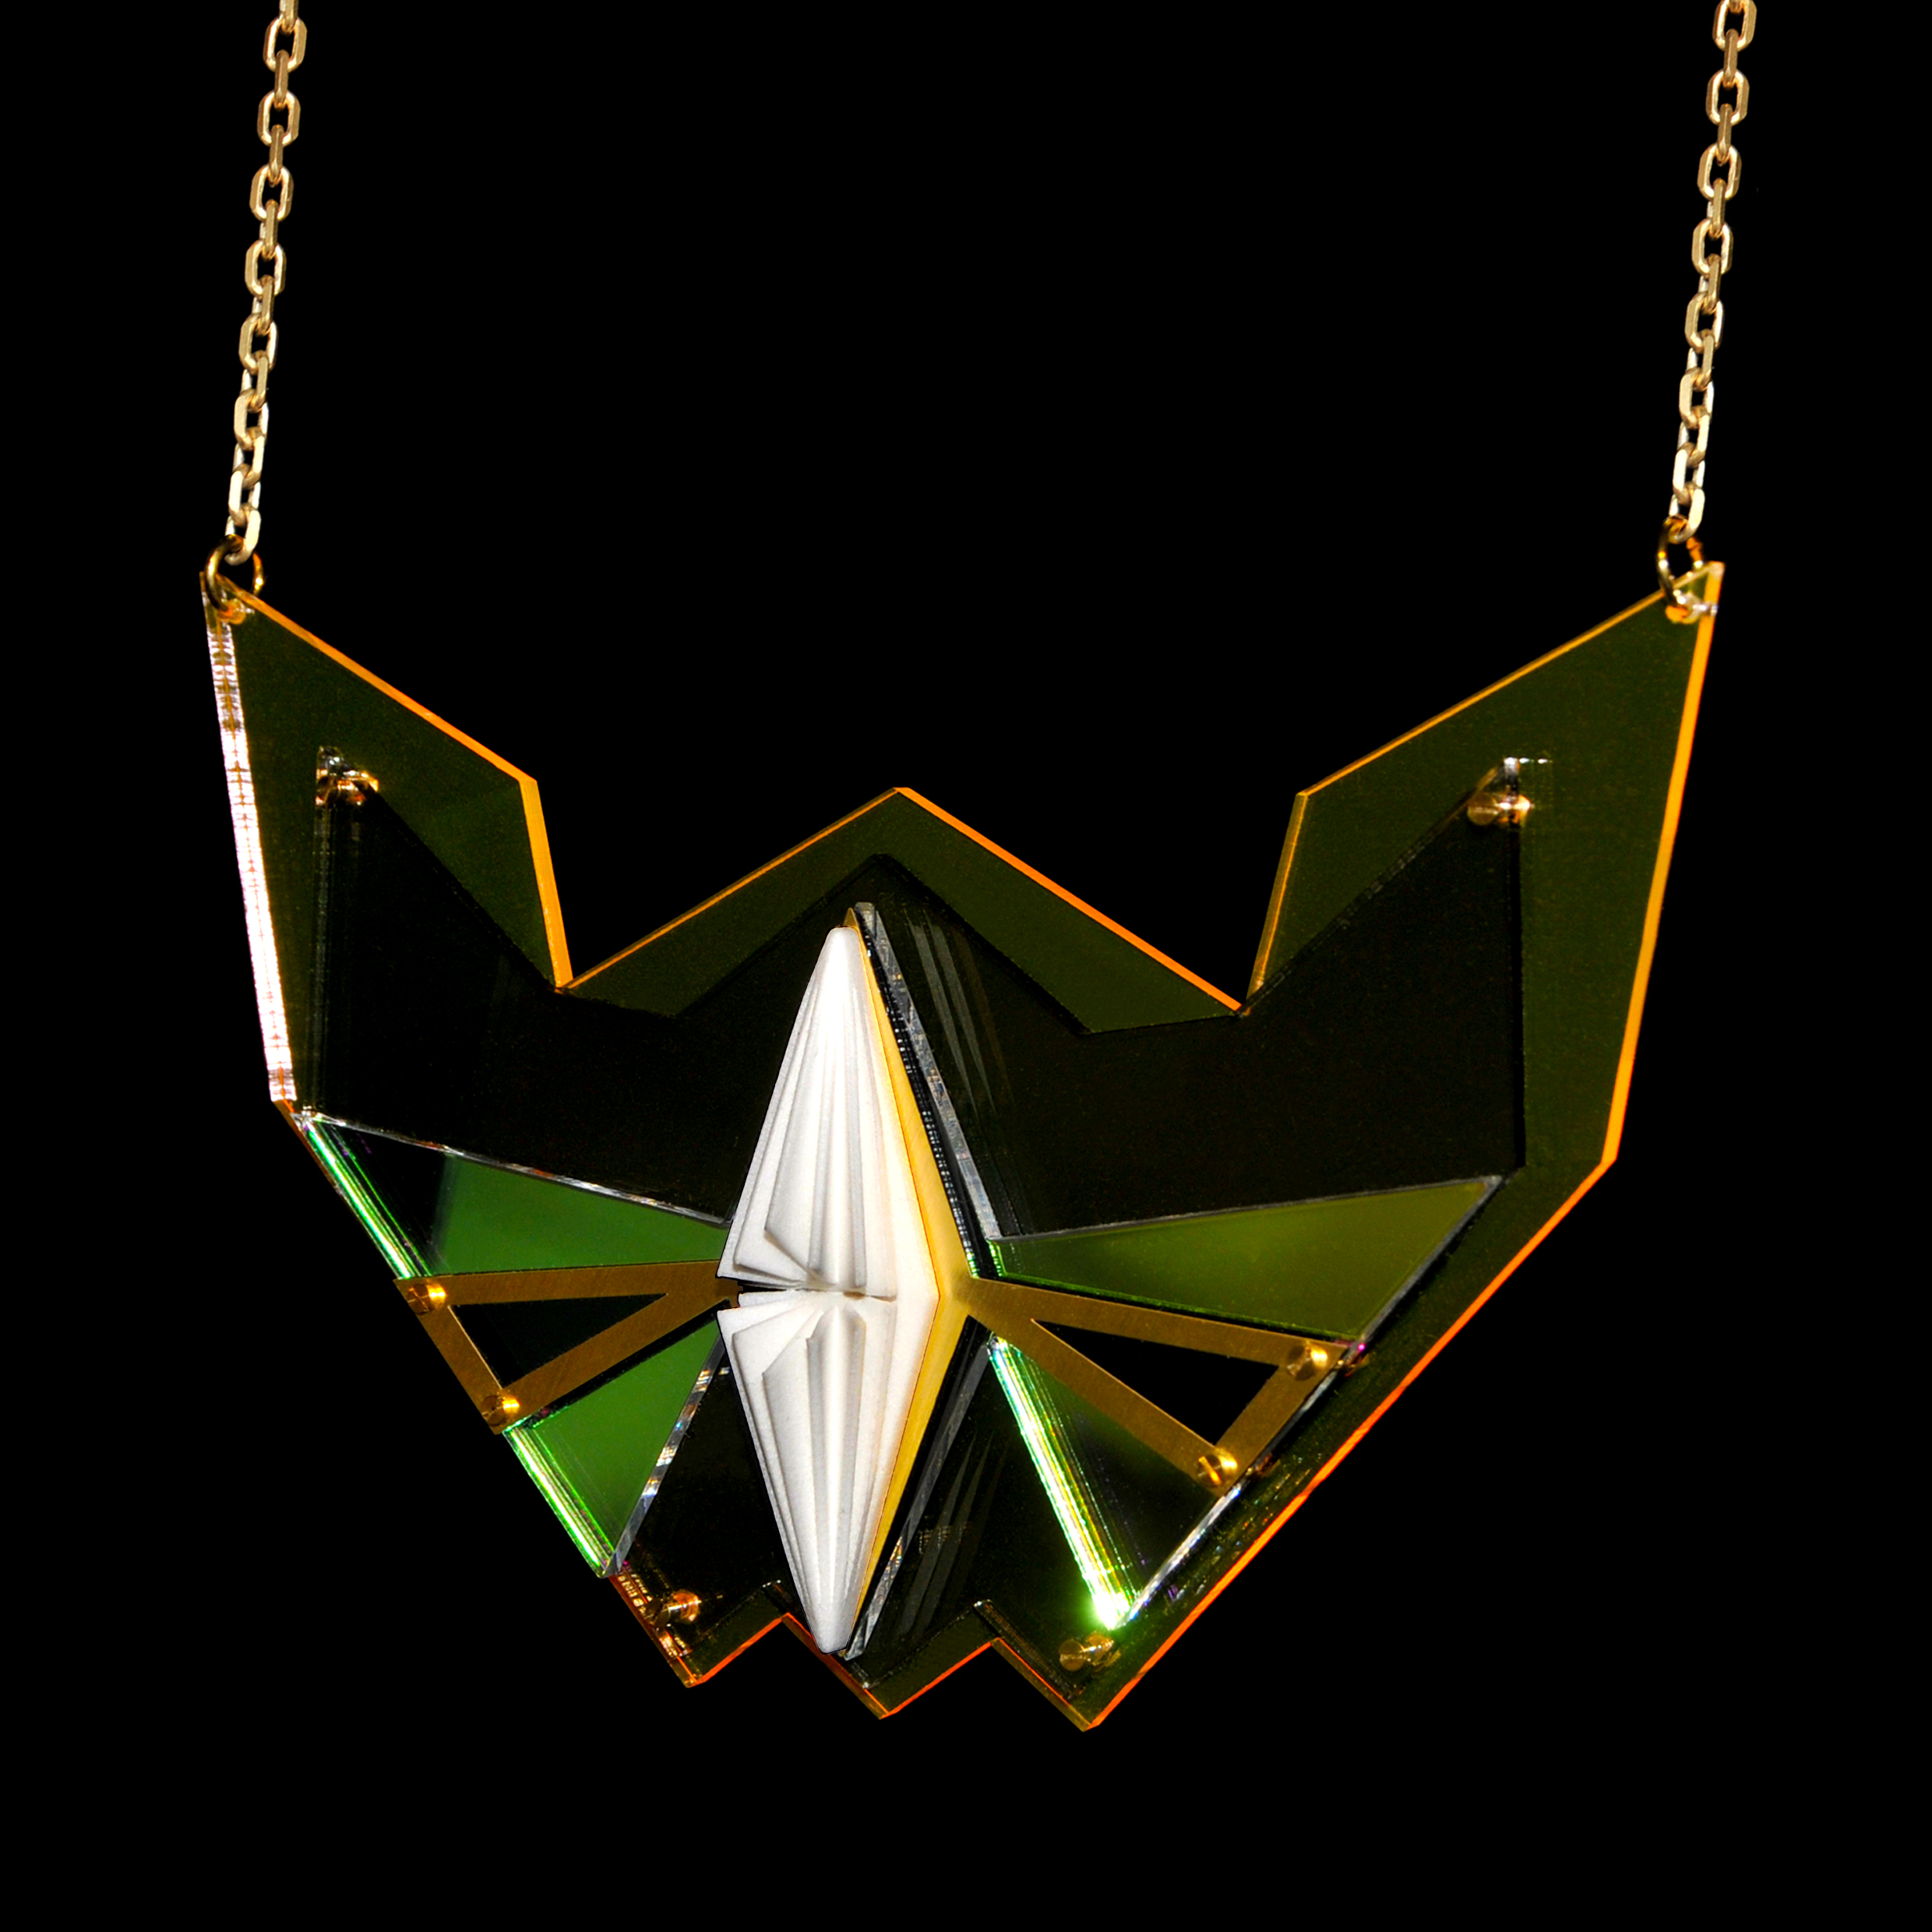 Tasura Necklace: 3D print with Acrylic backing